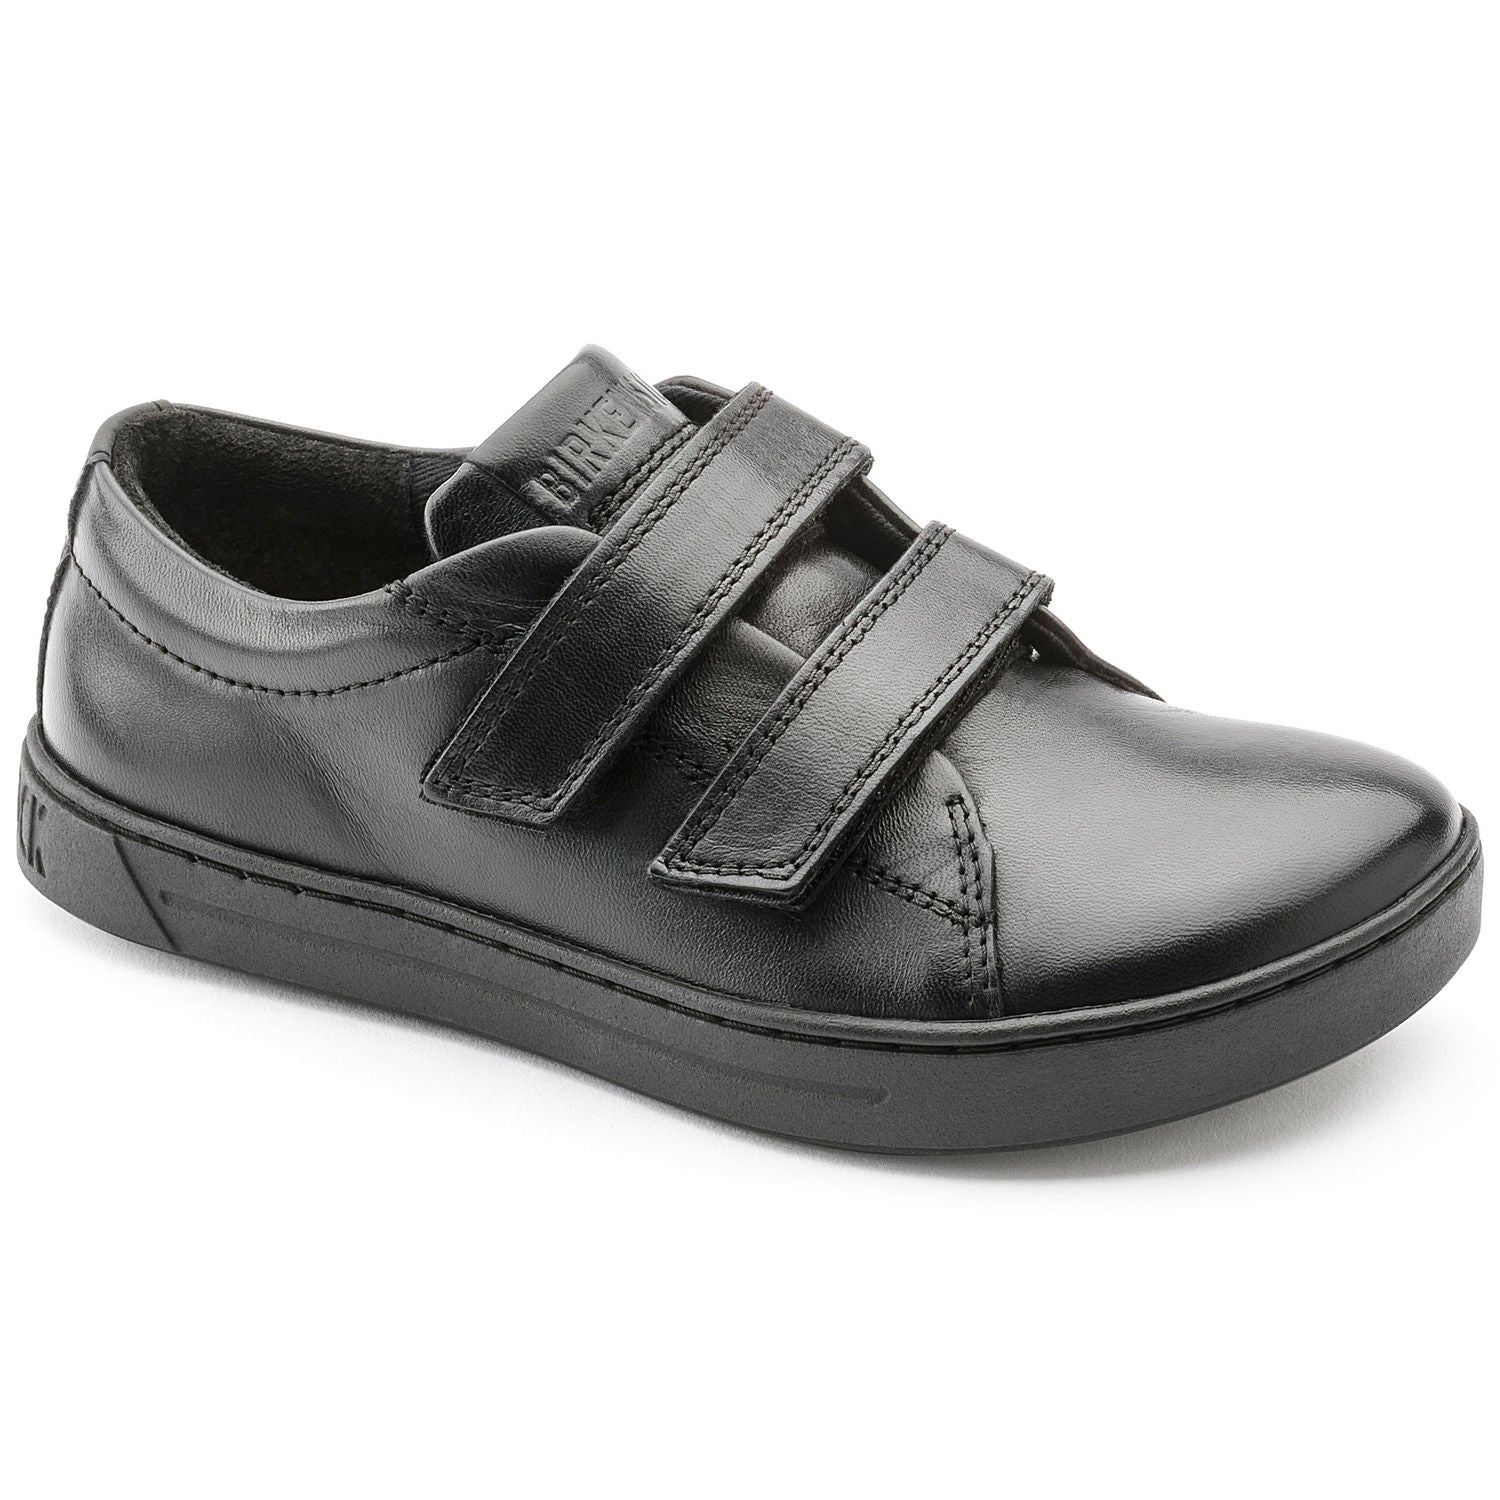 Arran Velcro - Black Natural Leather Kids